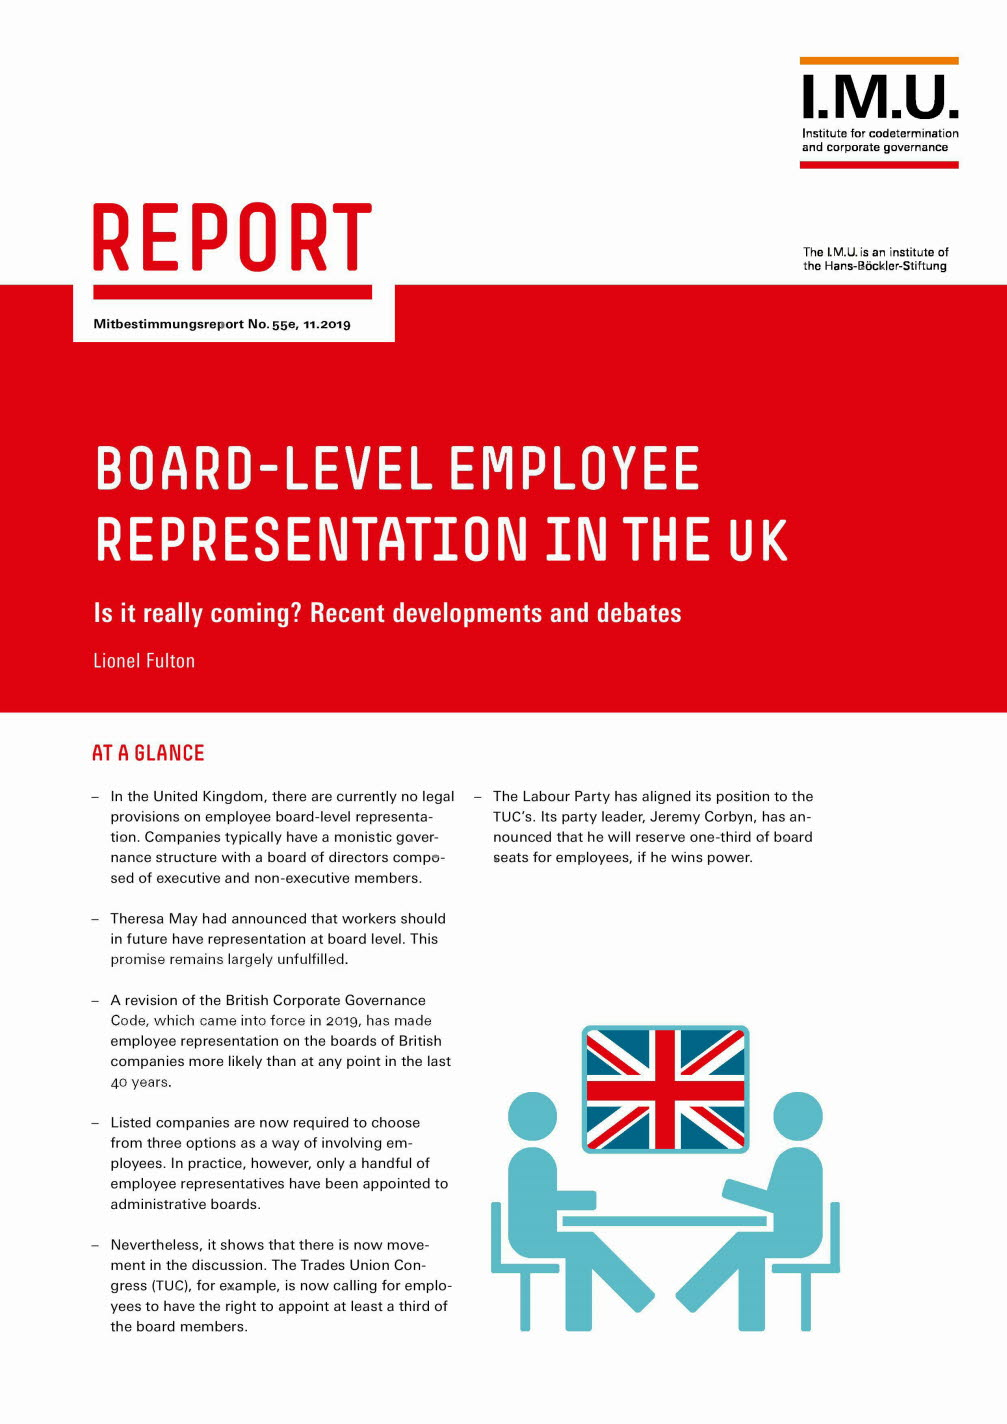 Board-level employee representation in the UK